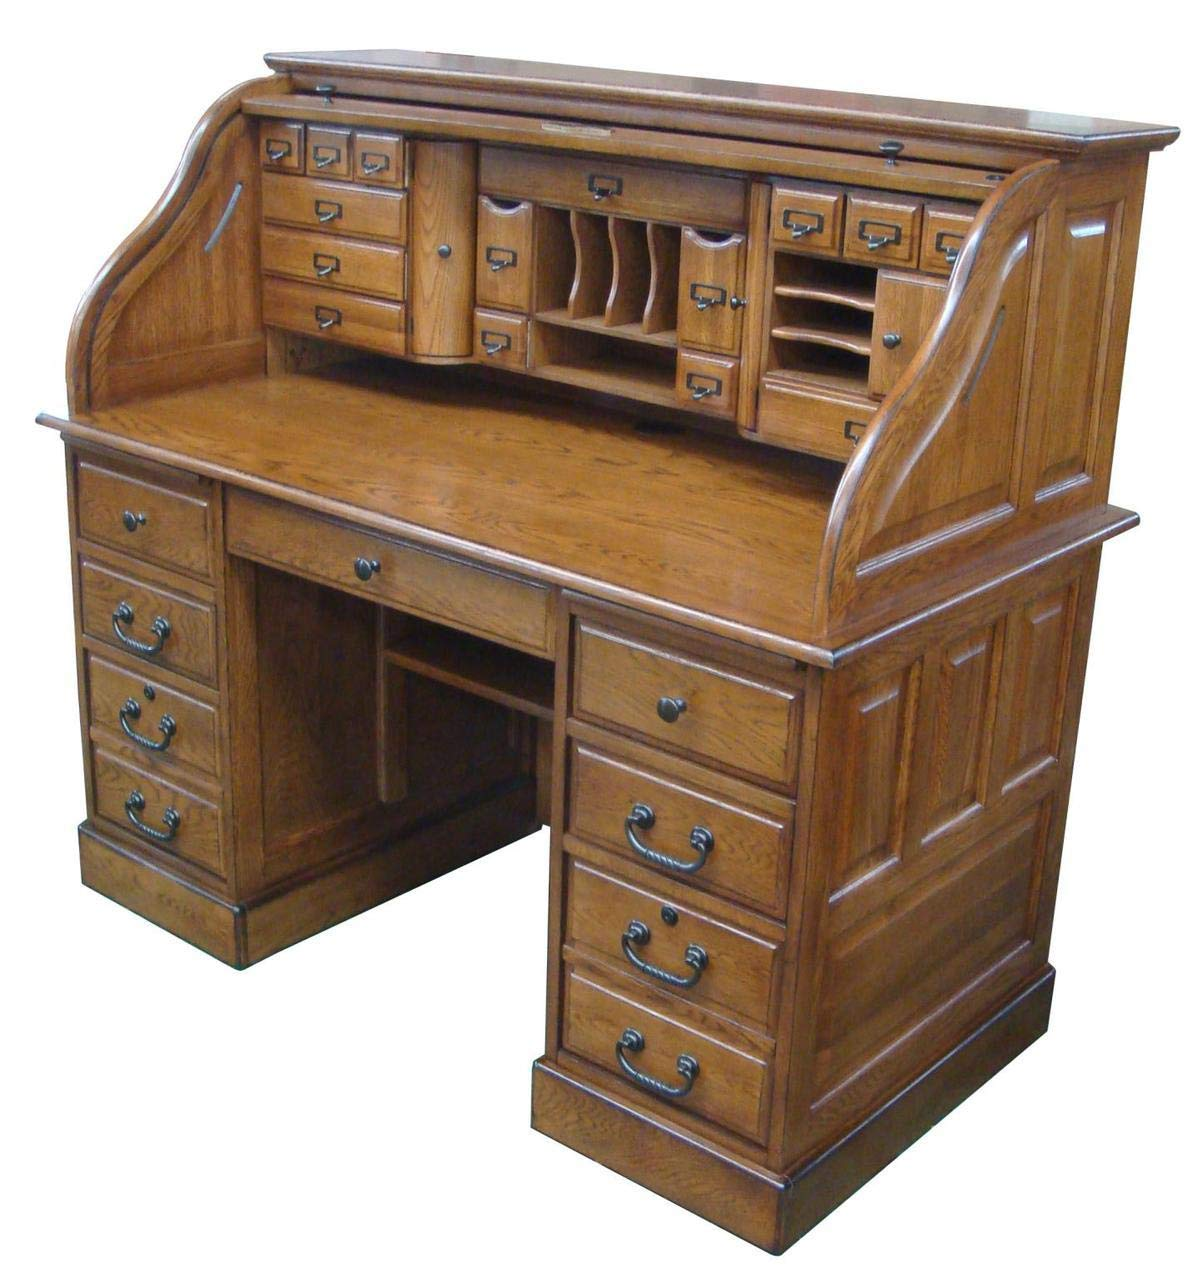 Roll Top Desk Solid Wood - 54 Inch Deluxe Executive Oak Desk for Home Office Secretary Organizer Roll Hutch Top Easy Assembly Quality Crafted Construction by Country Marketplace